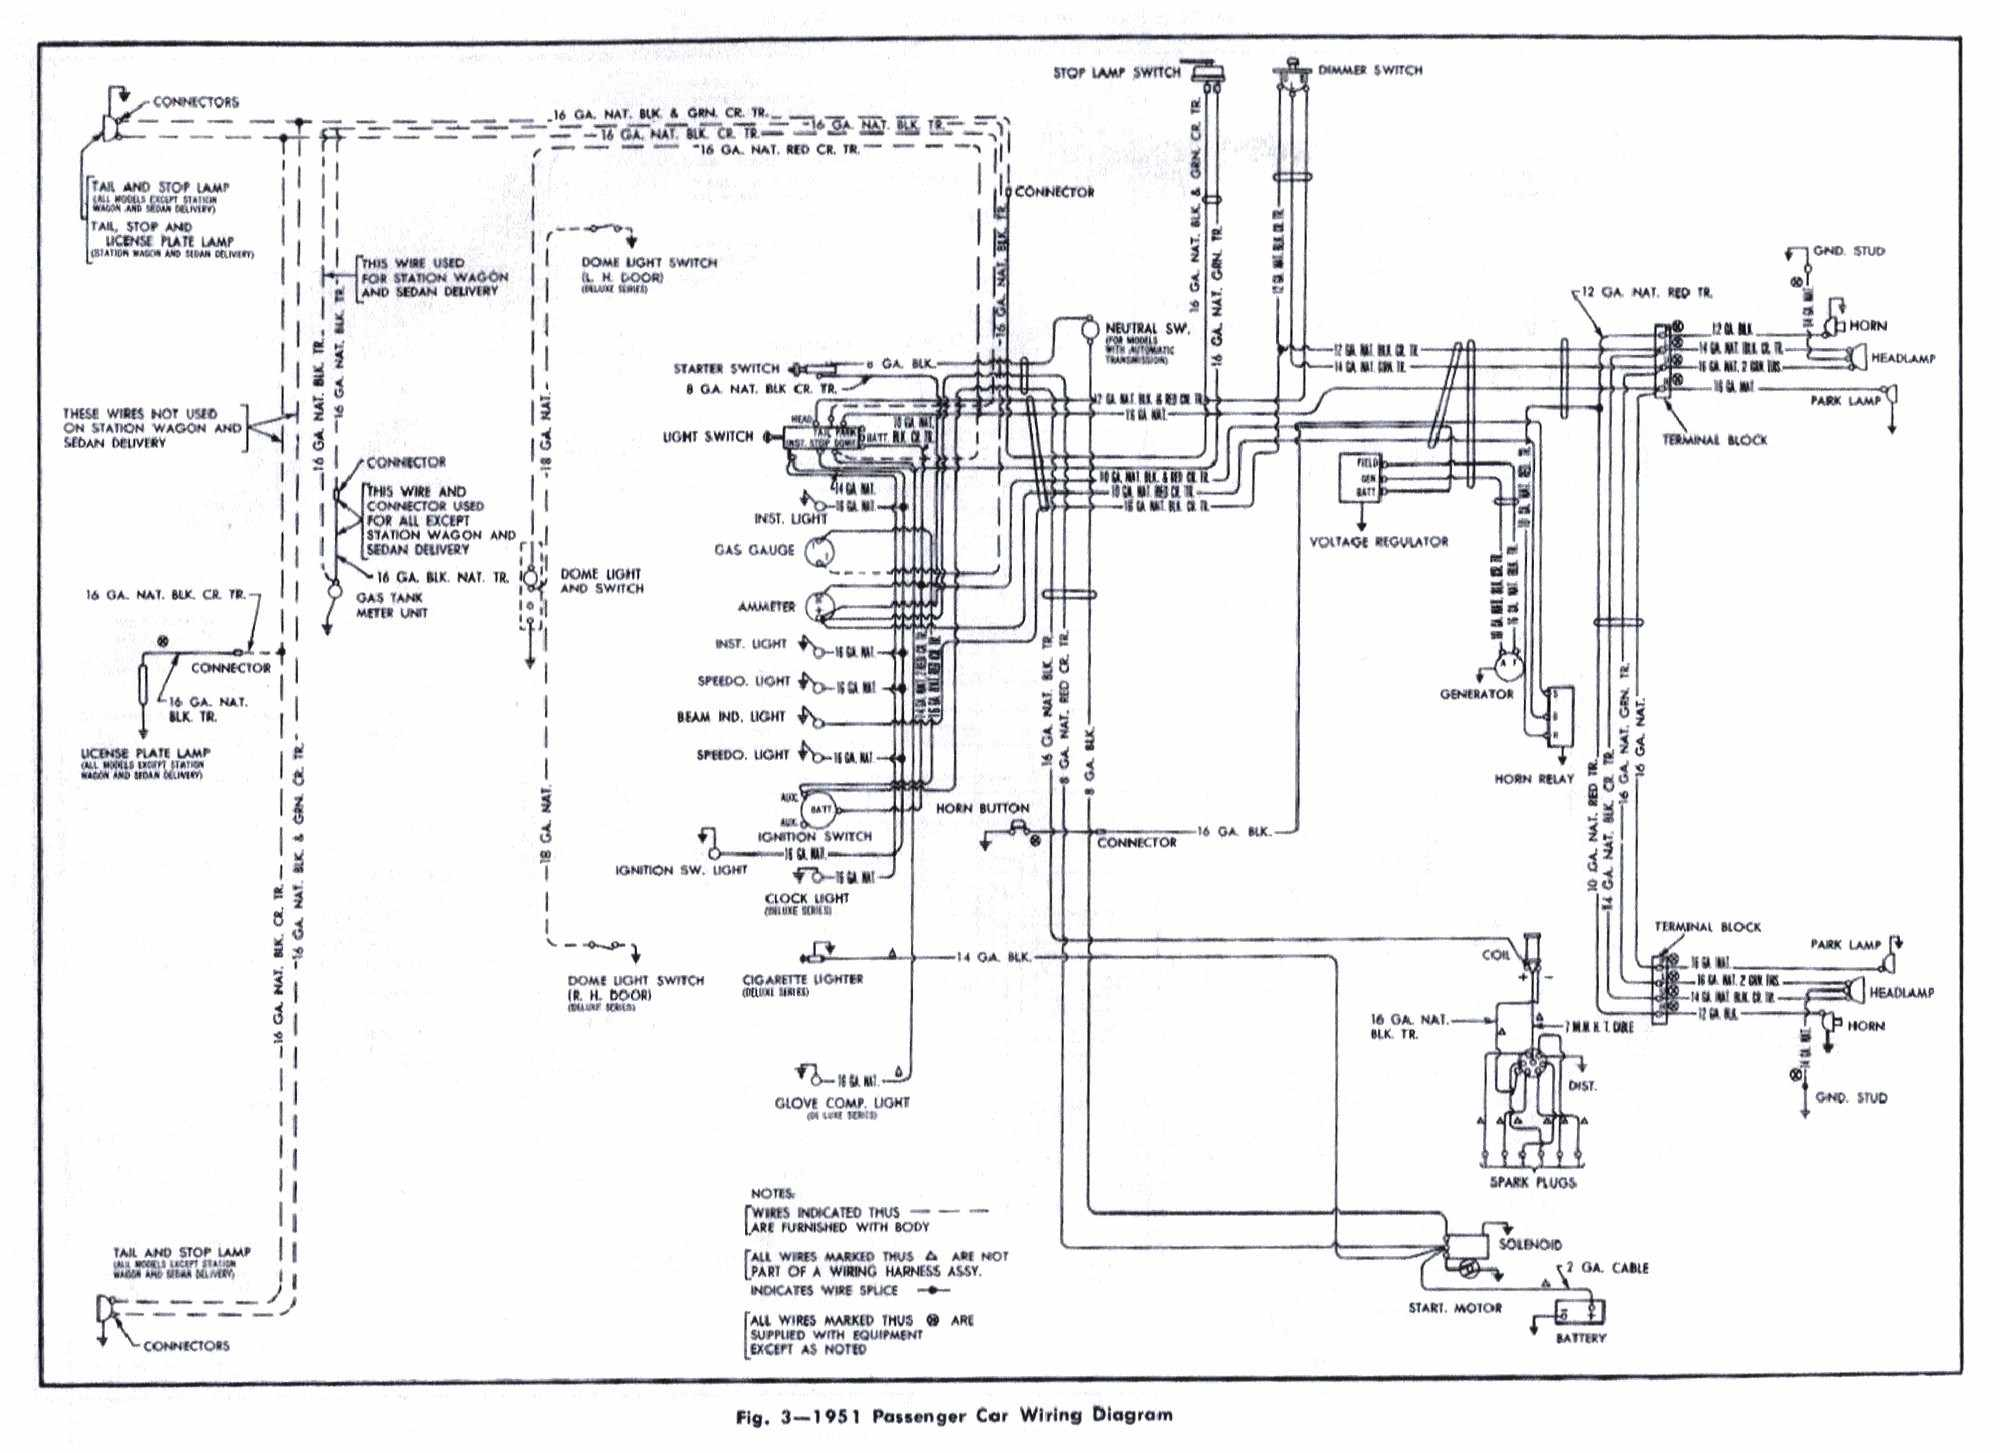 1981 Chevy Van Wiring Diagram Trusted 2001 Express Chevrolet Diagrams